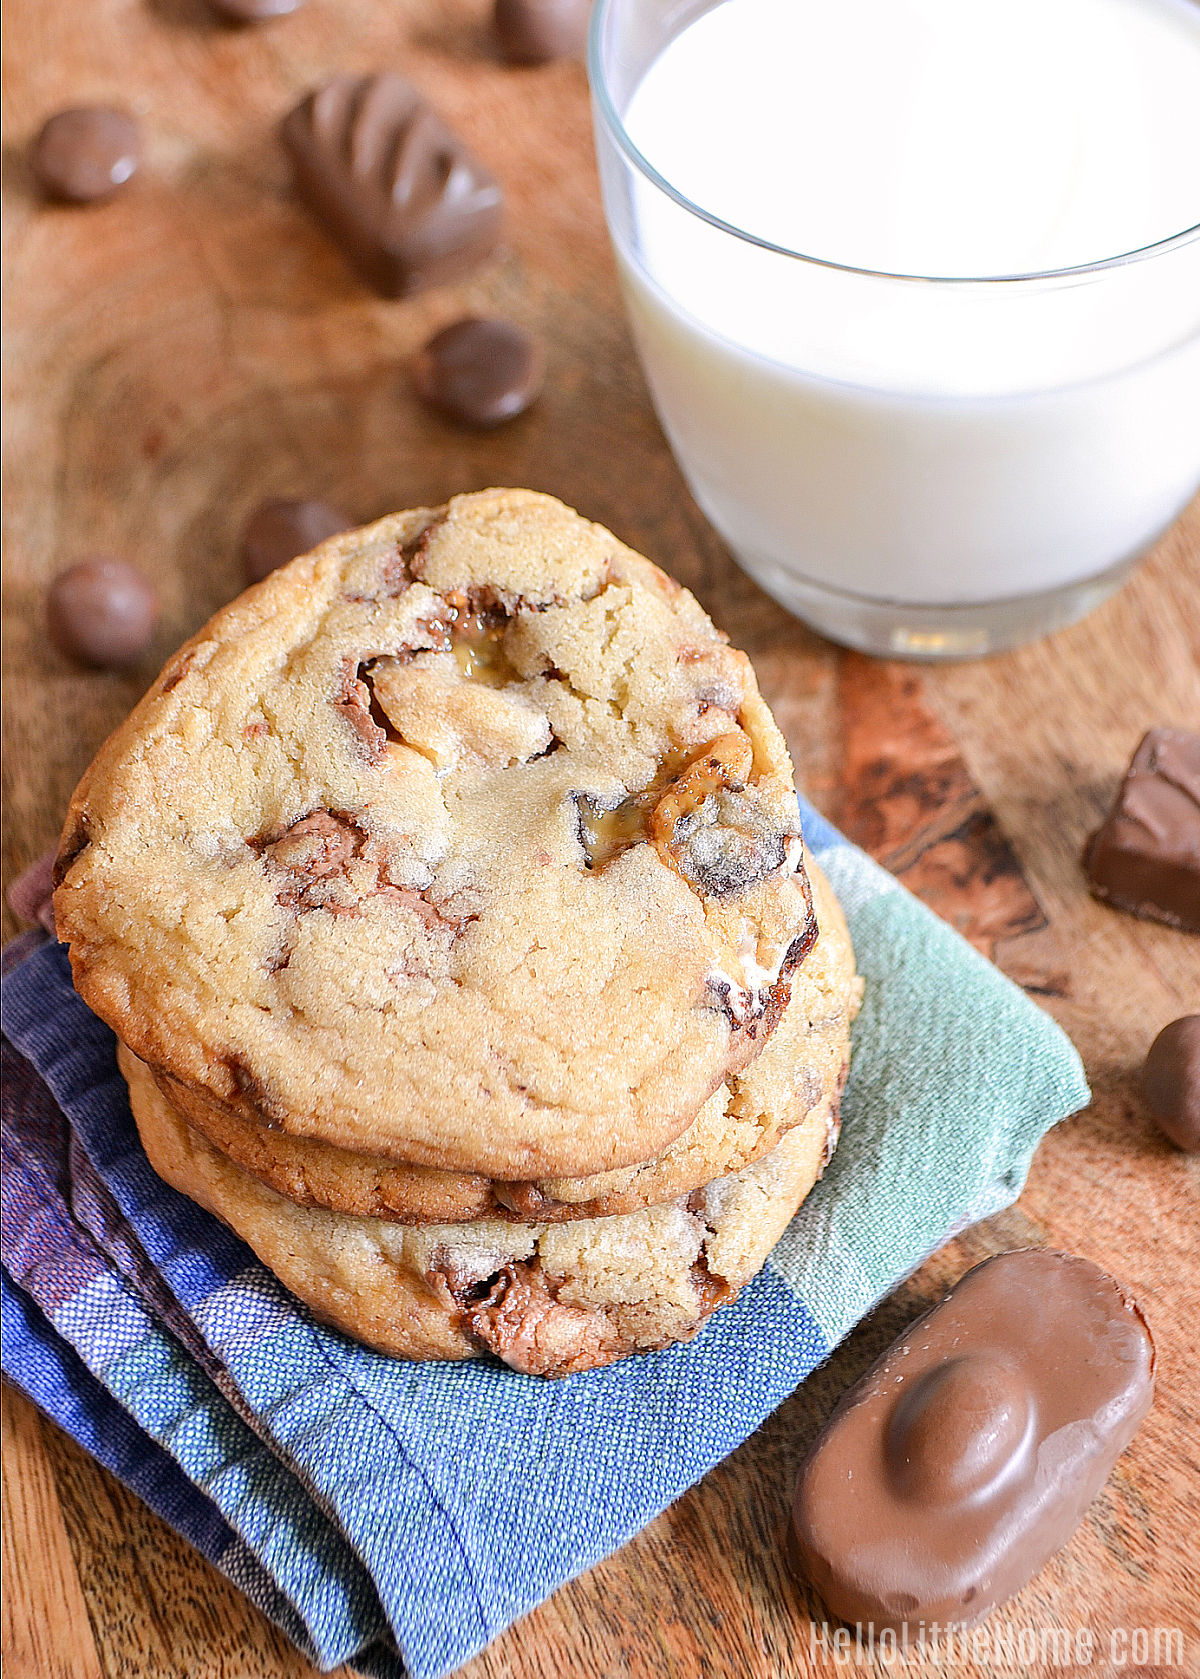 A stack of cookies, chocolate candies, and a glass of milk on a wood table.